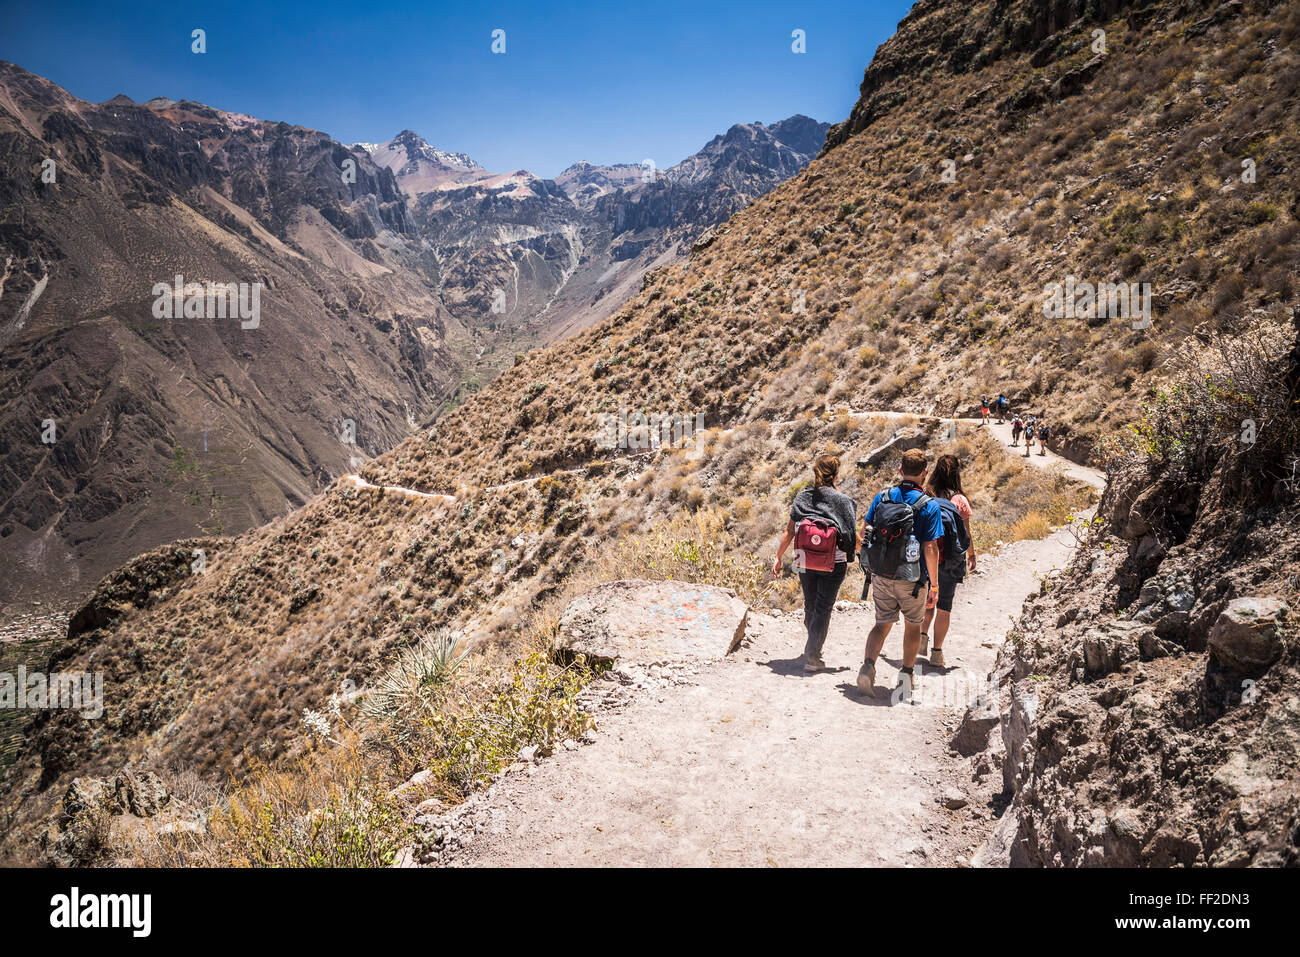 Tourist hiking the CoRMca Canyon trek, Peru, South America - Stock Image